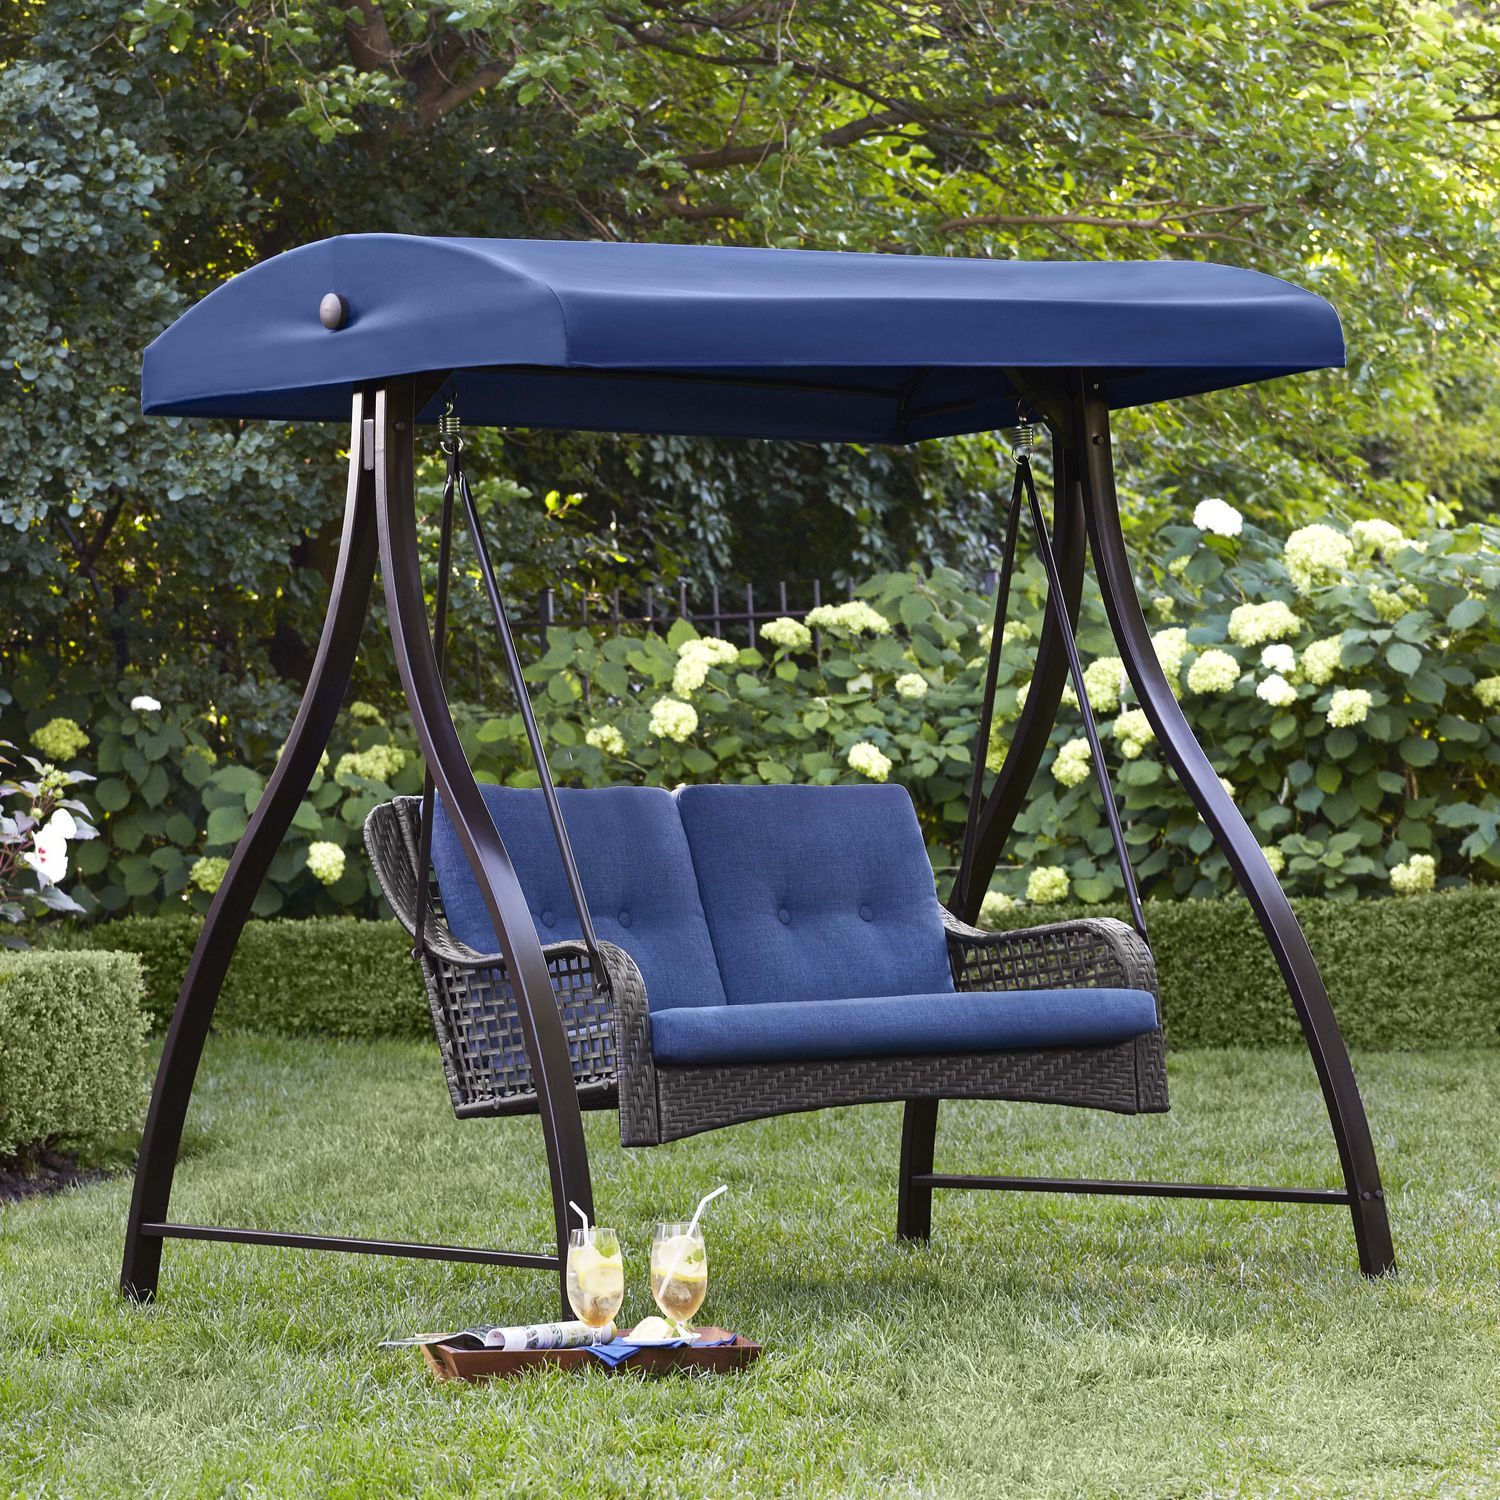 Outdoor Patio Furniture Kitchener: Hometrends Tuscany 2-Person Swing